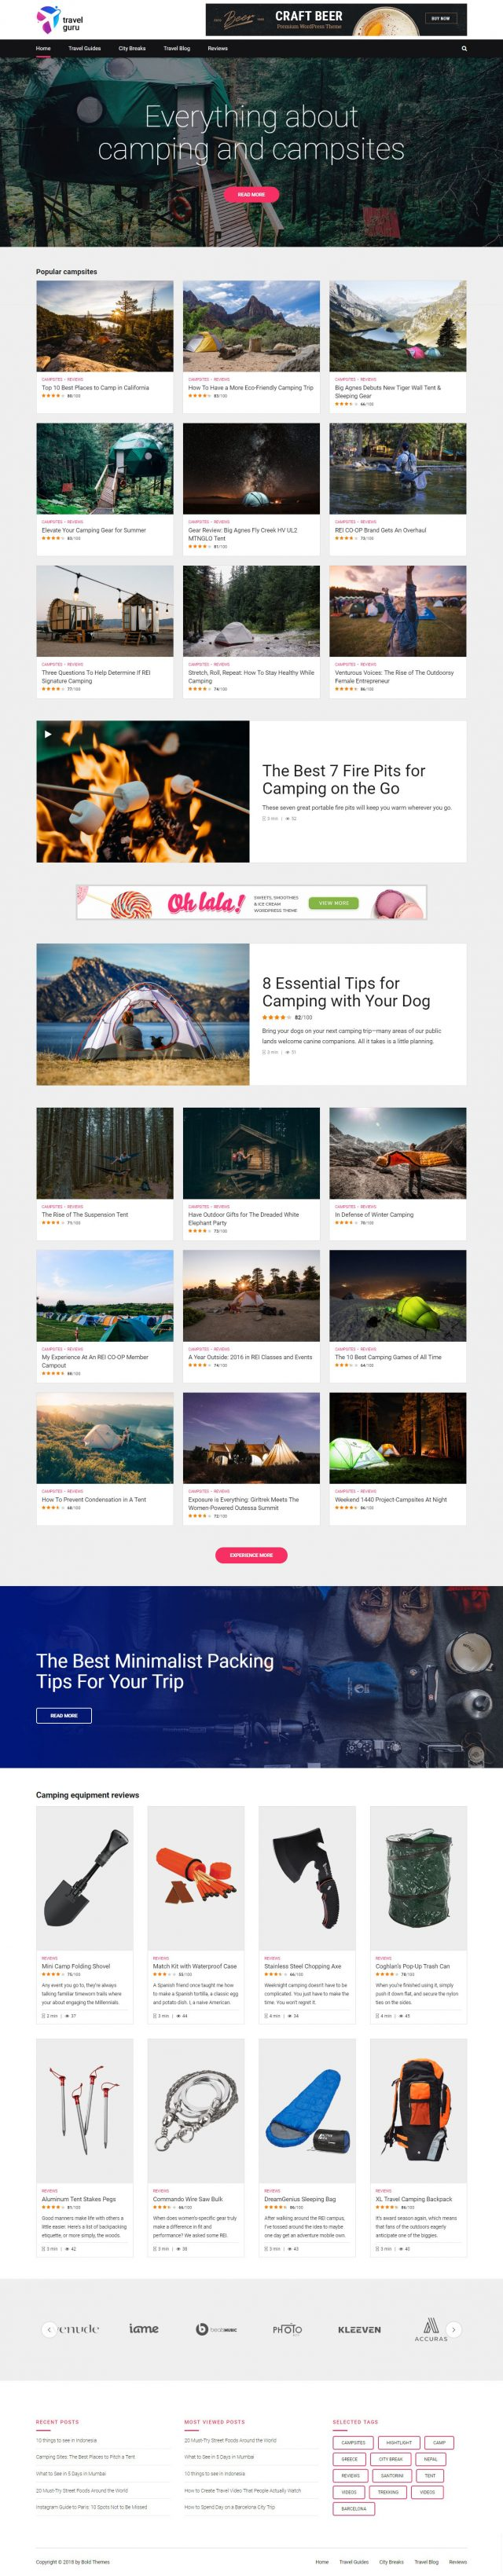 newstar wordpress theme travel reviews page 1